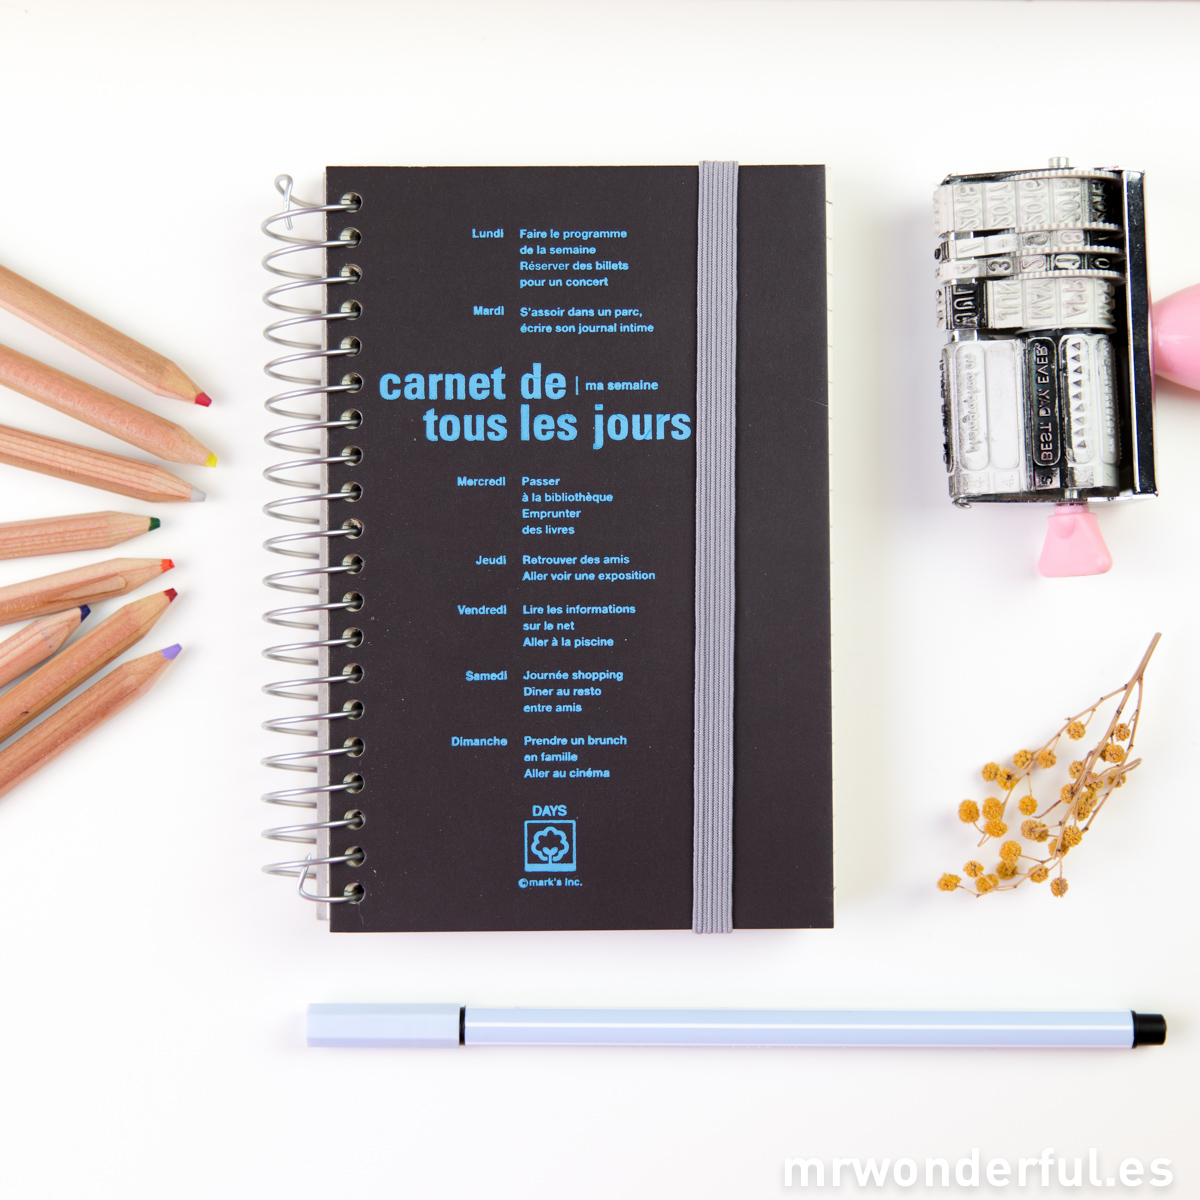 mrwonderful_DAY-2B6-BR_libreta-pautada-days-marron-oscuro-1